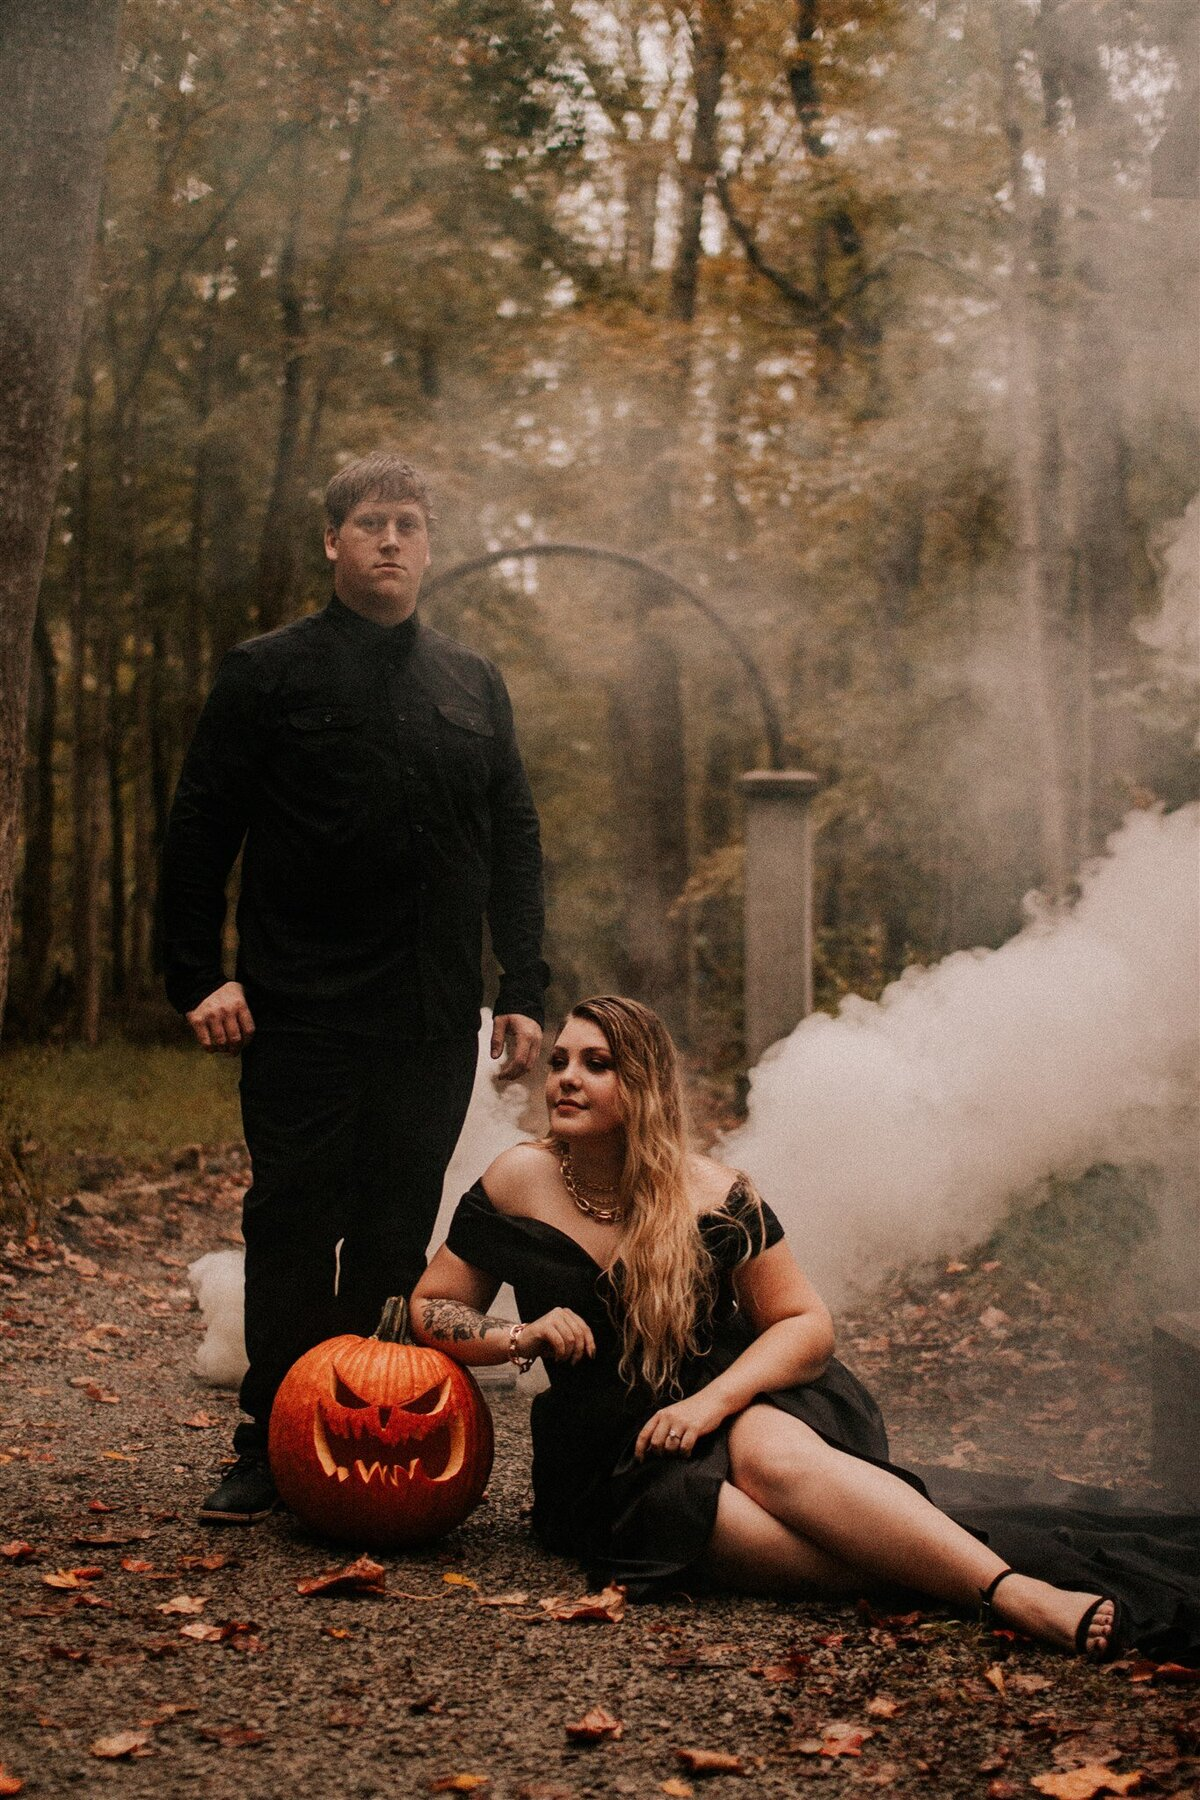 Brizzy-Rose-and-Emma-Rose-Island-Charlestown-Spoopy-Engagement-Session-17